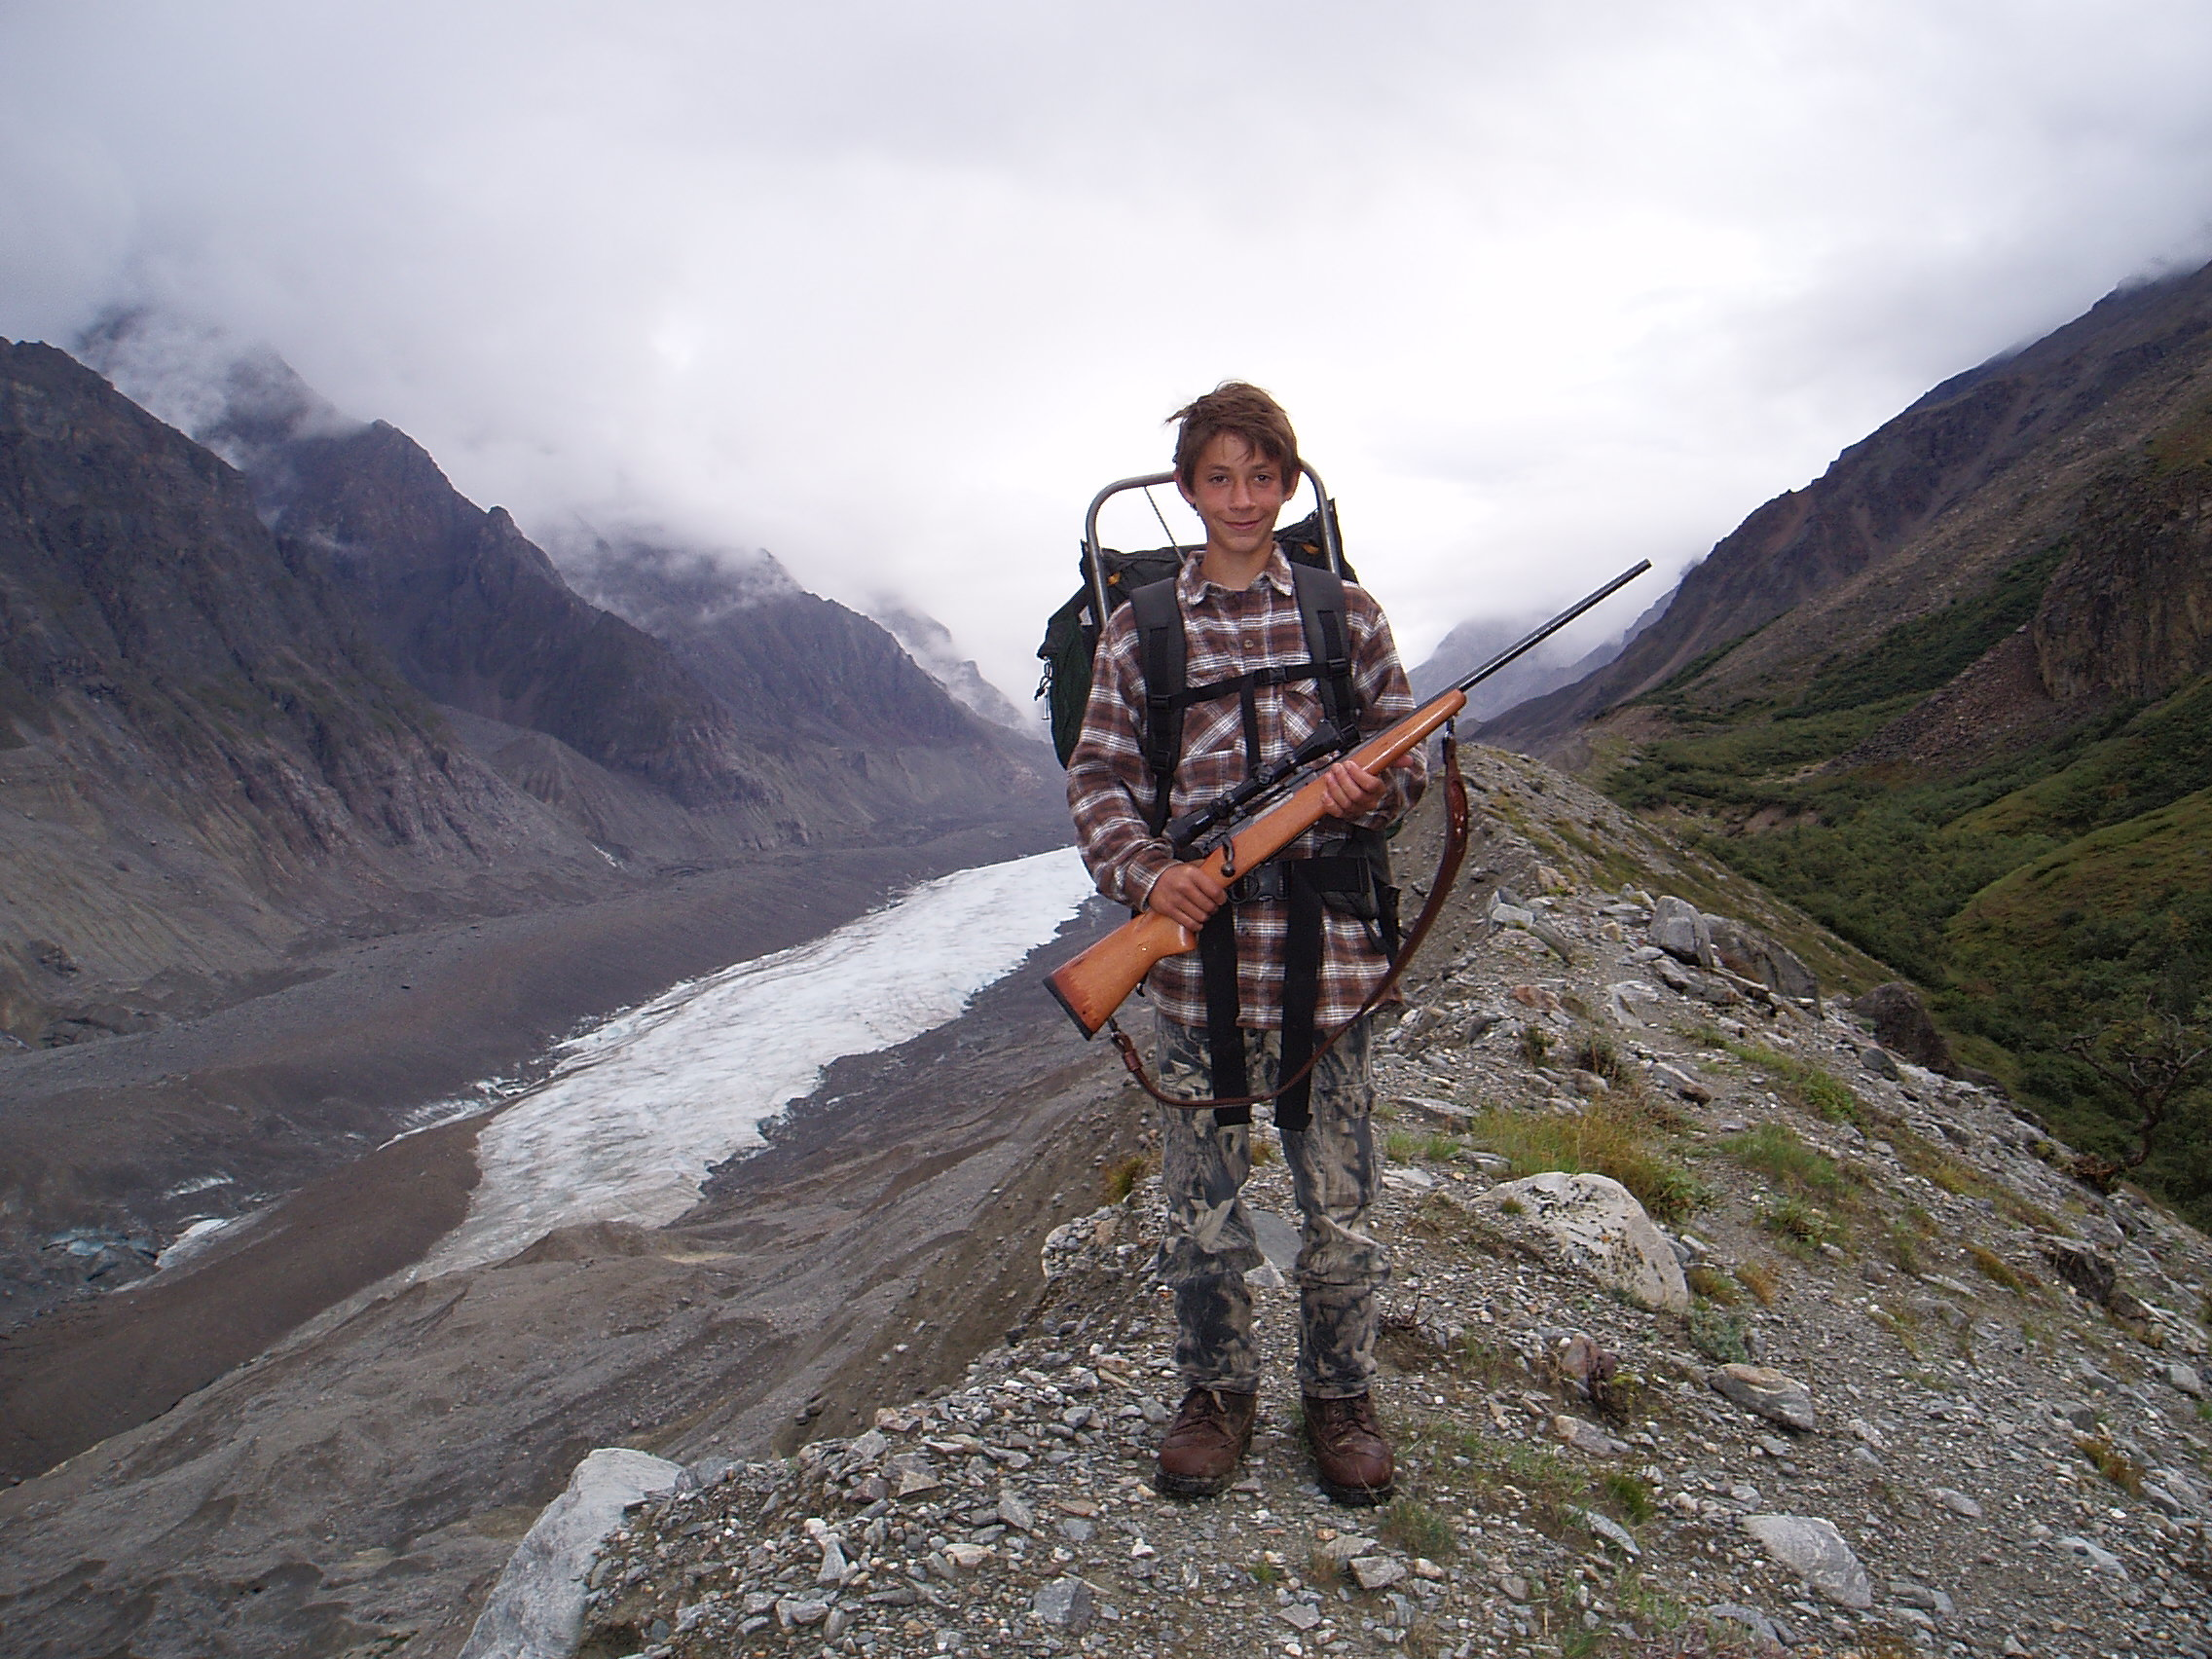 The sheep hunter. Jared on his first sheep hunt after sleeping out without a sleeping bag, ready for the long walk out.